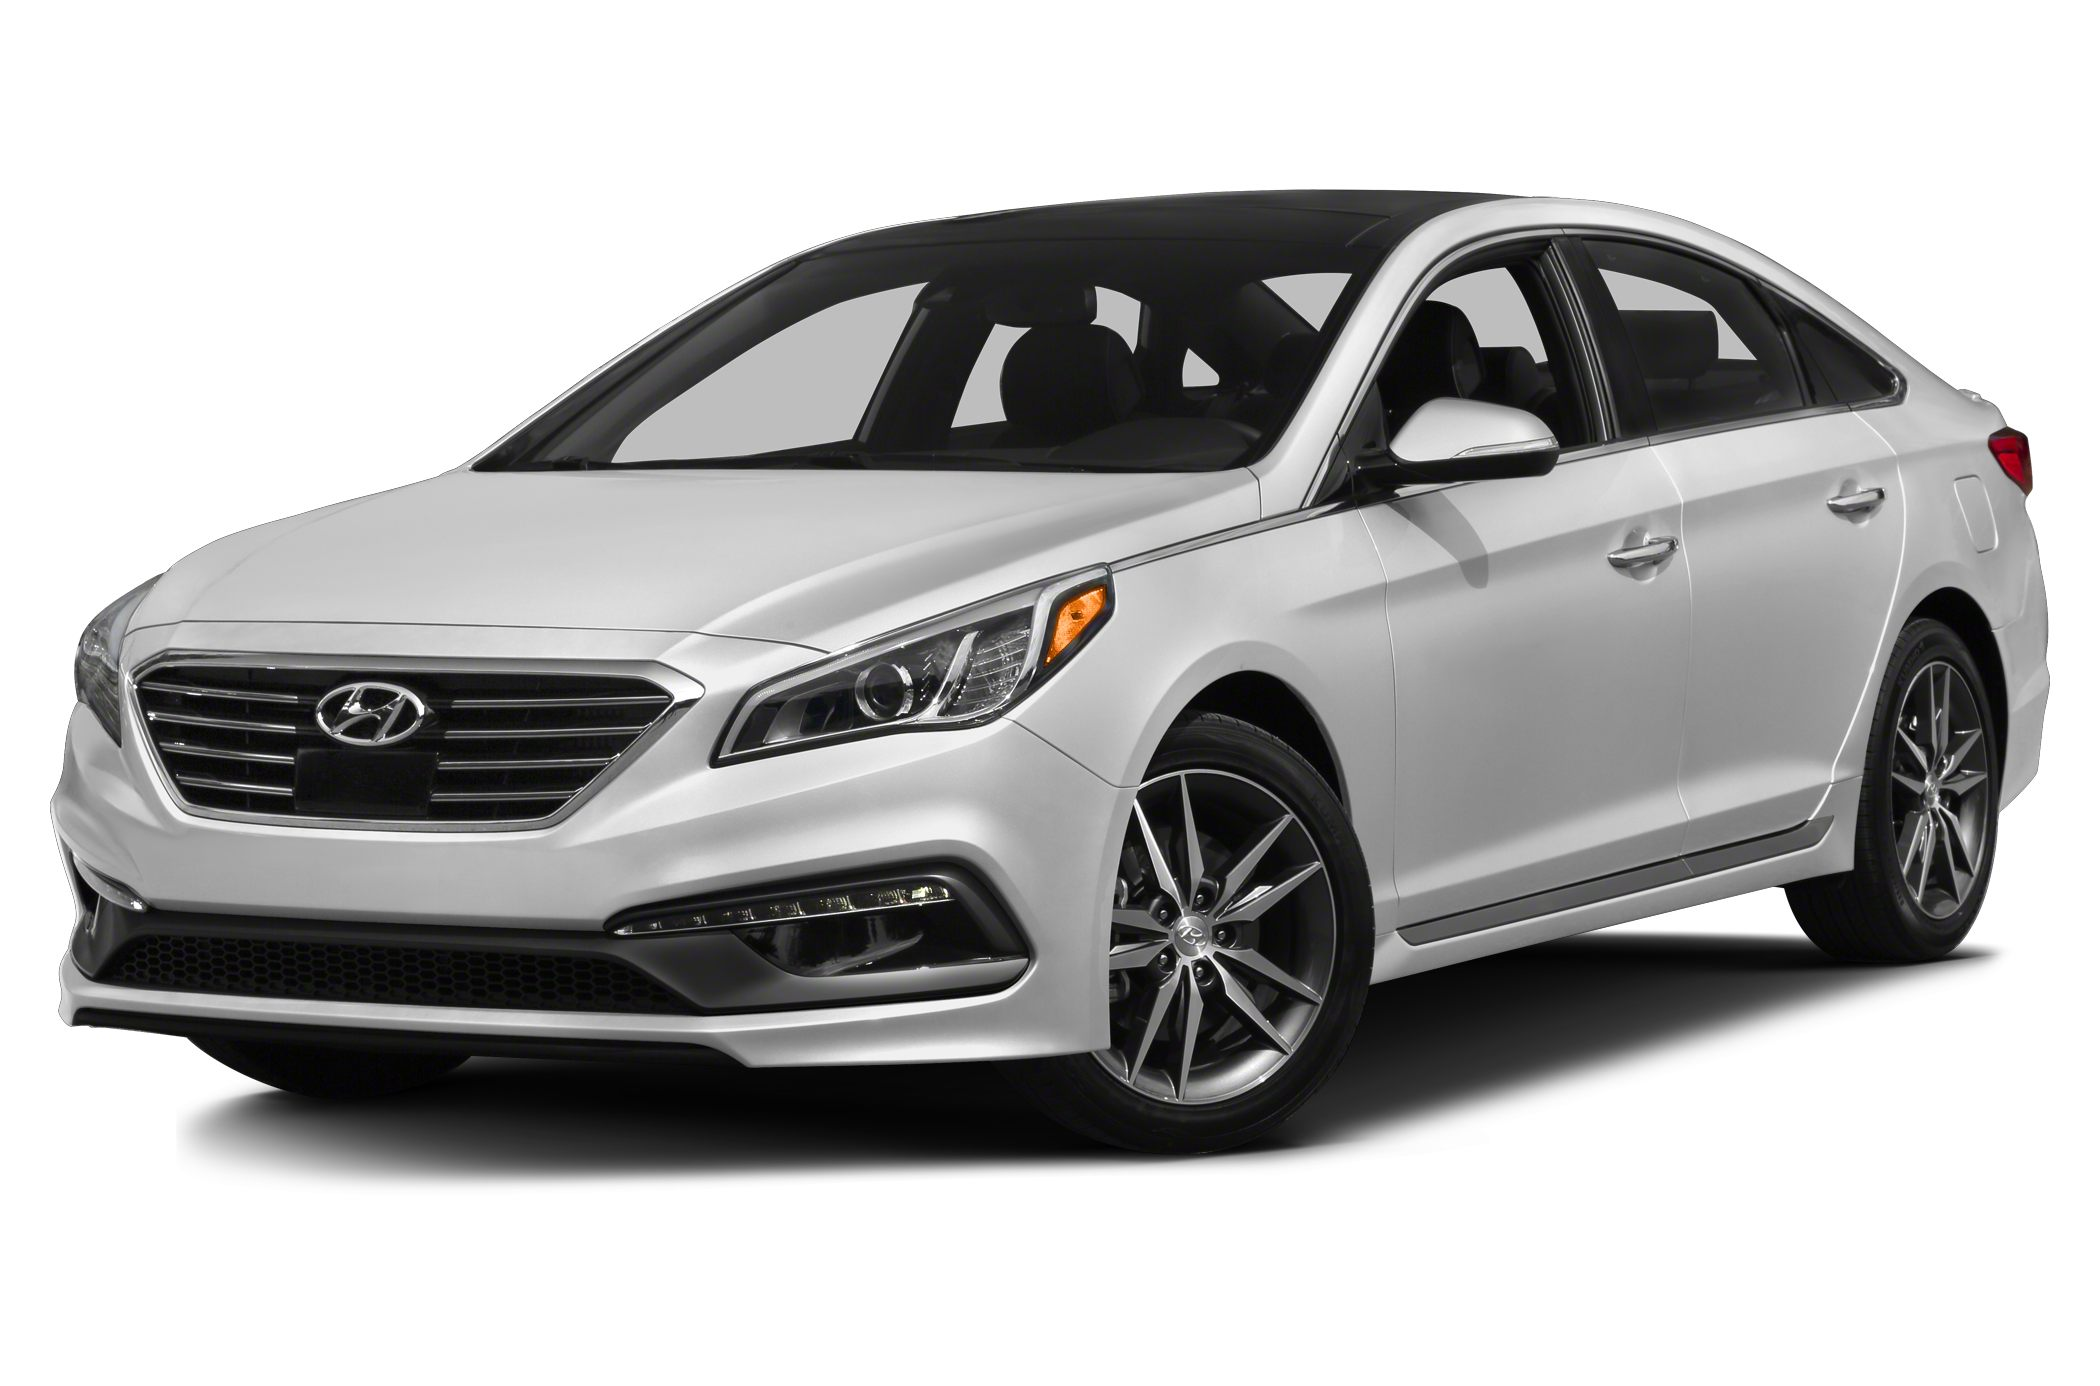 2015 Hyundai Sonata Limited 2.0T Sedan for sale in North Wilkesboro for $34,740 with 3 miles